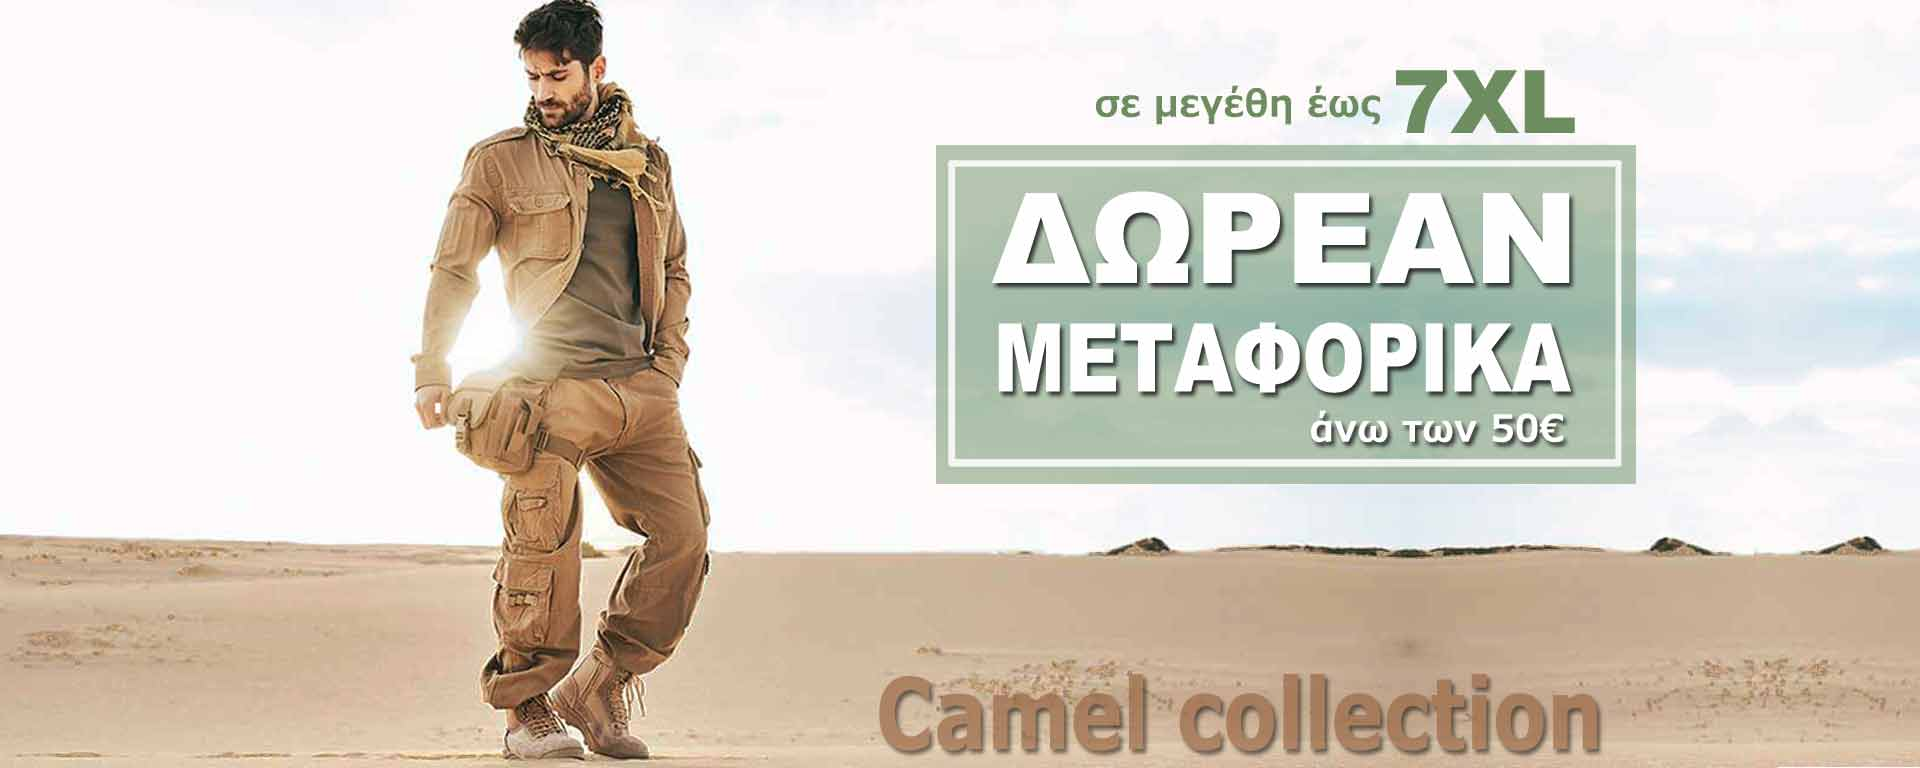 TattooFashion Camel collection